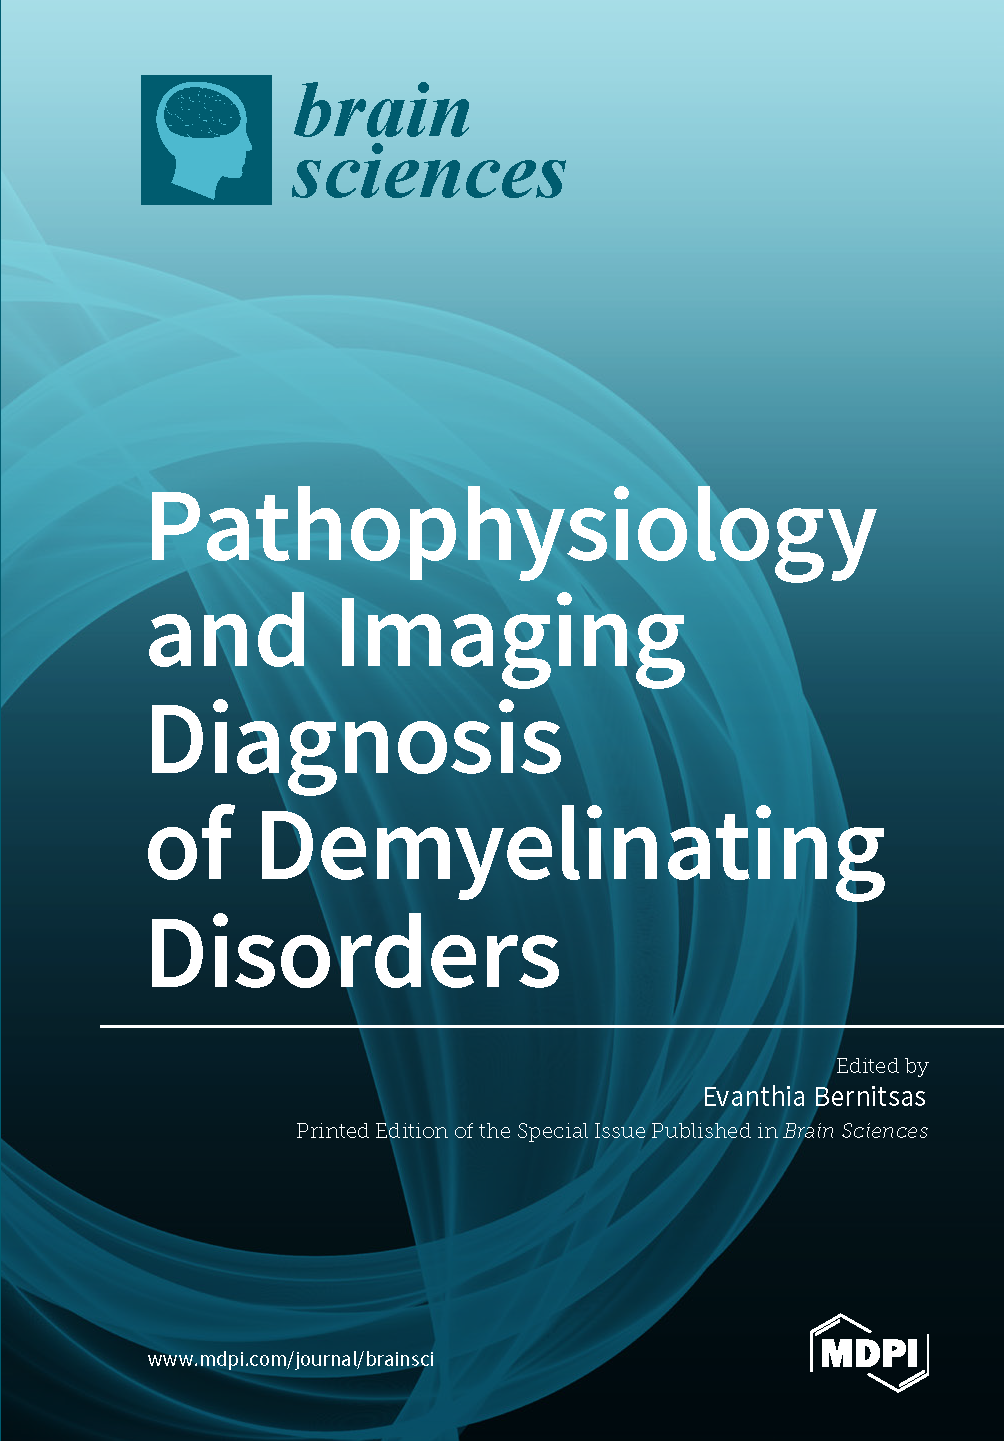 Pathophysiology and Imaging Diagnosis of Demyelinating Disorders